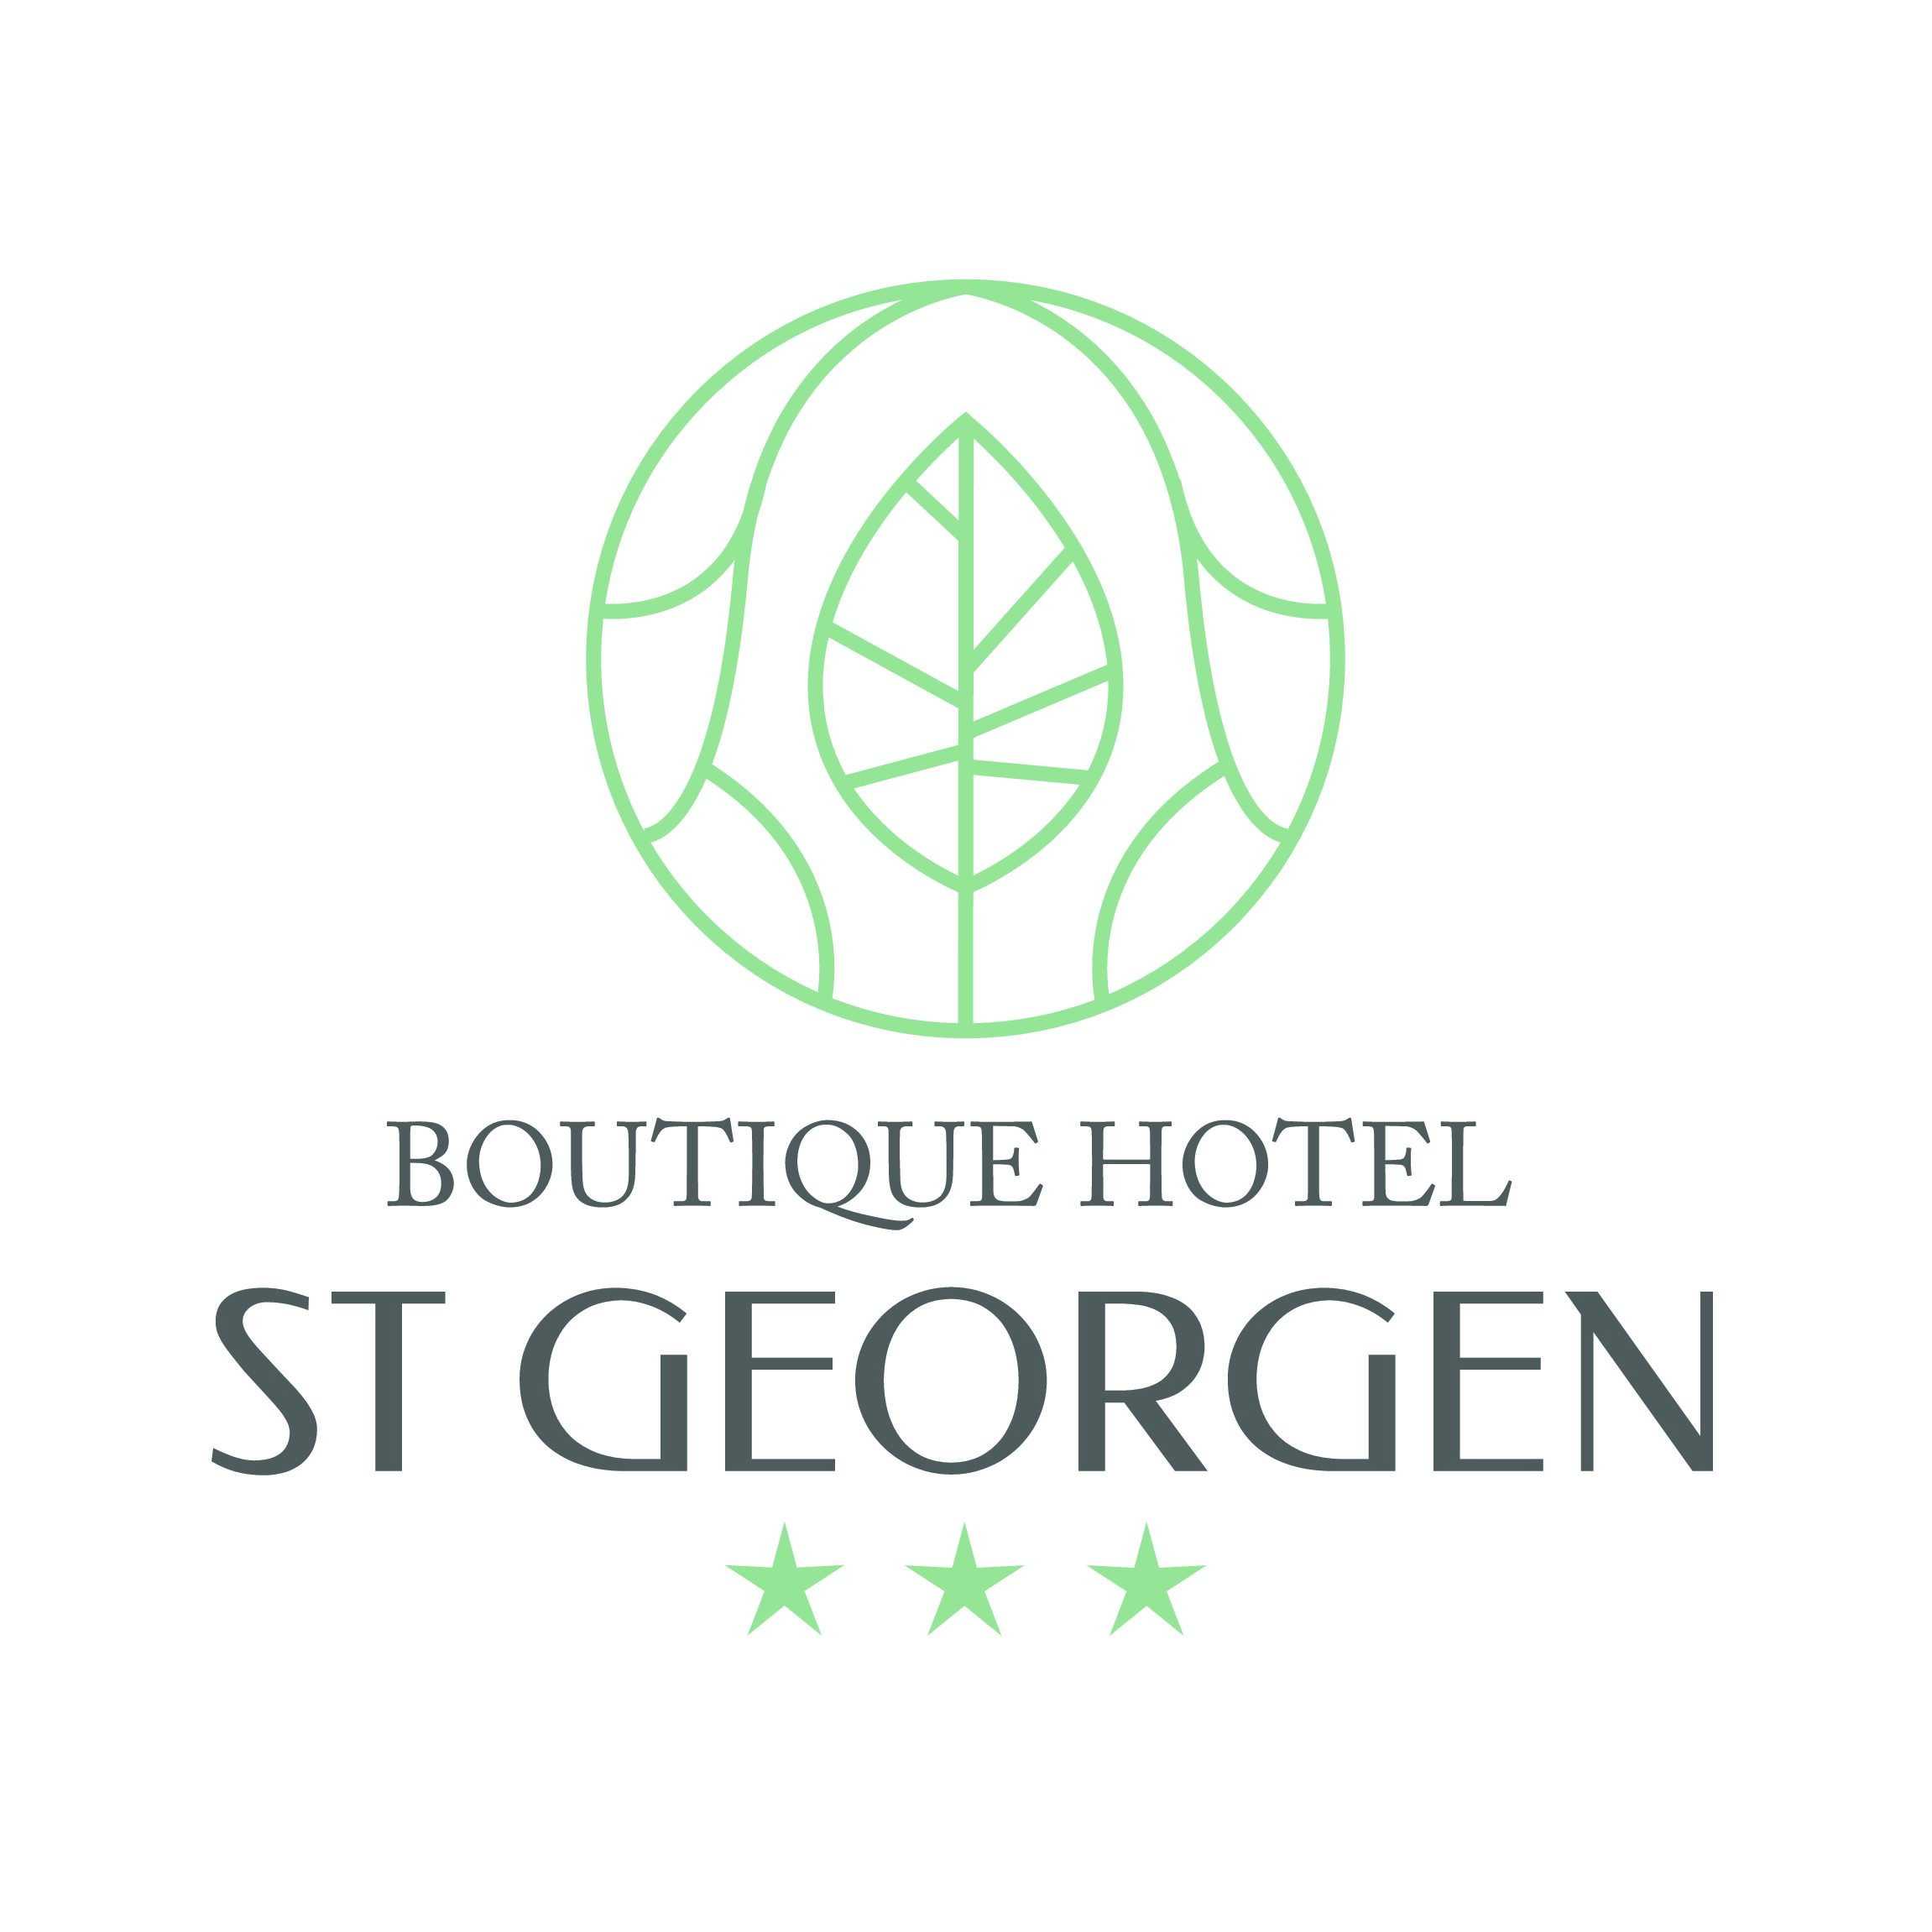 Boutique Hotel St Georgen